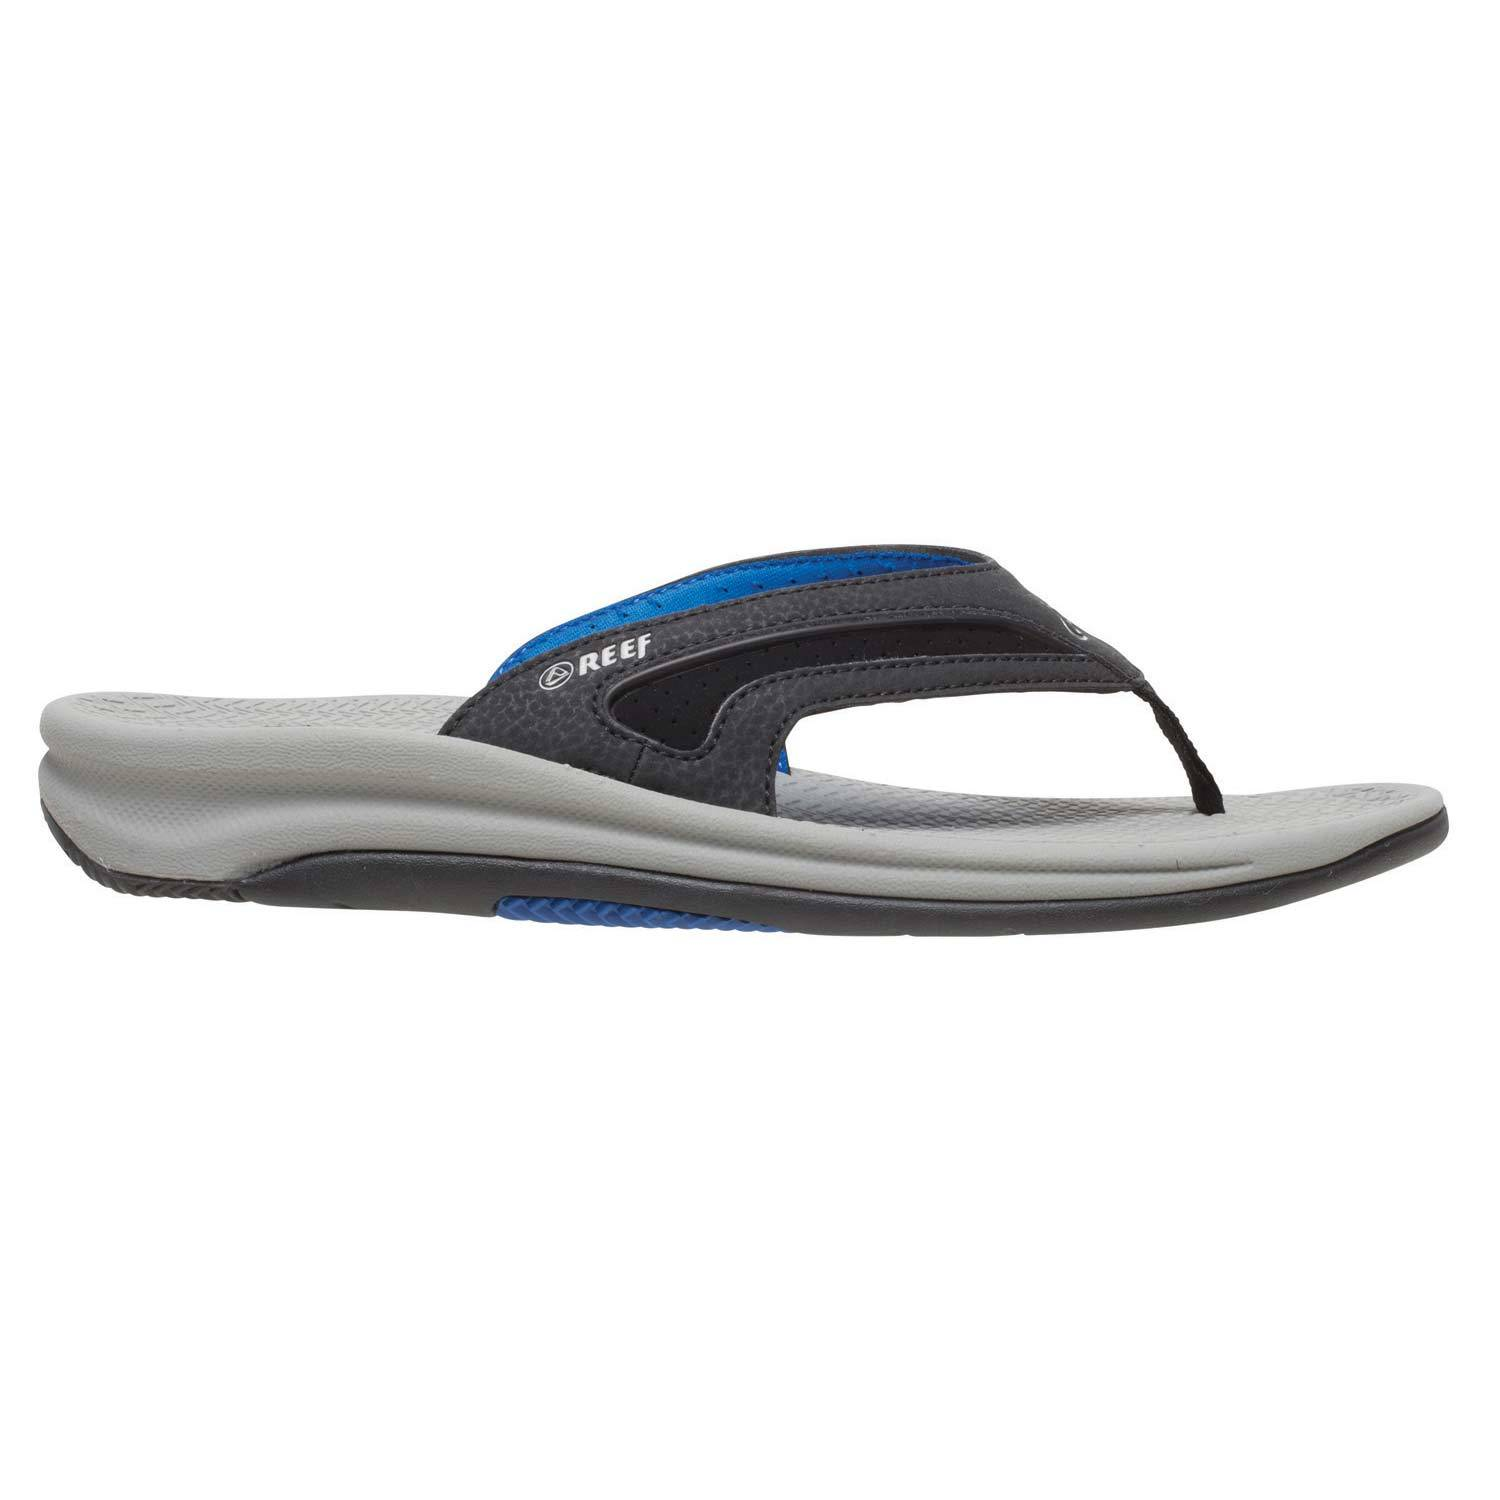 6b3a33b3b44 Clearance Men s Flex Flip-Flop Sandals Enlarged view of picture